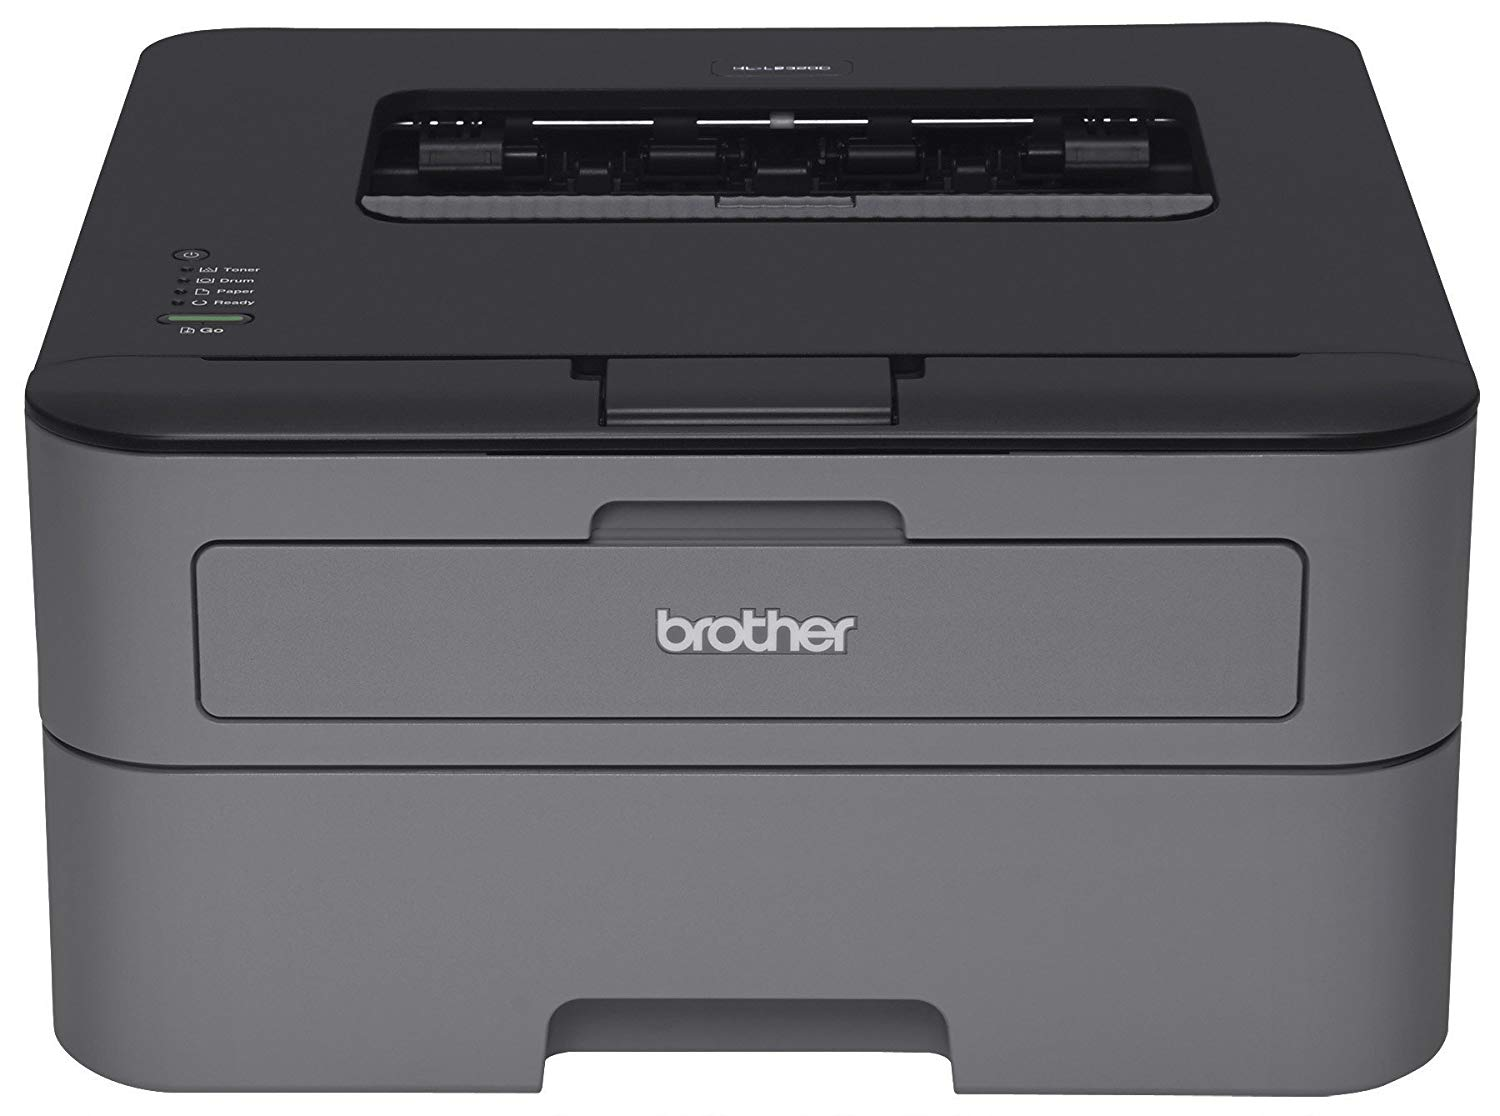 Brother HL-L2300D Laser Printer with duplex printing